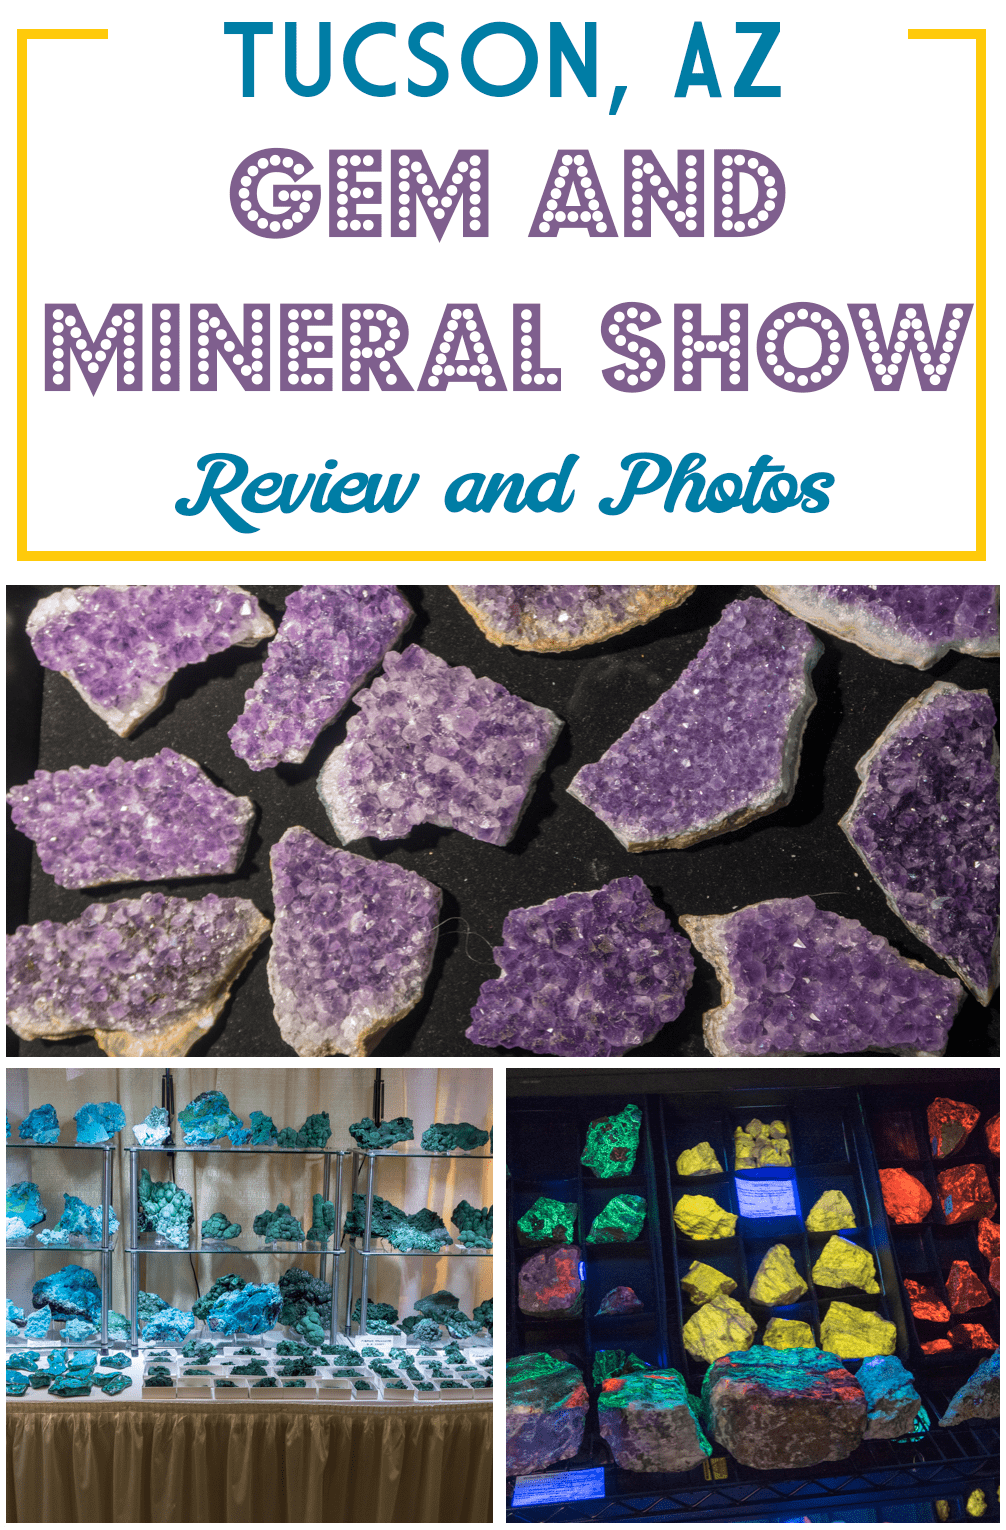 Tucson Gem and Mineral Show Review and Photos